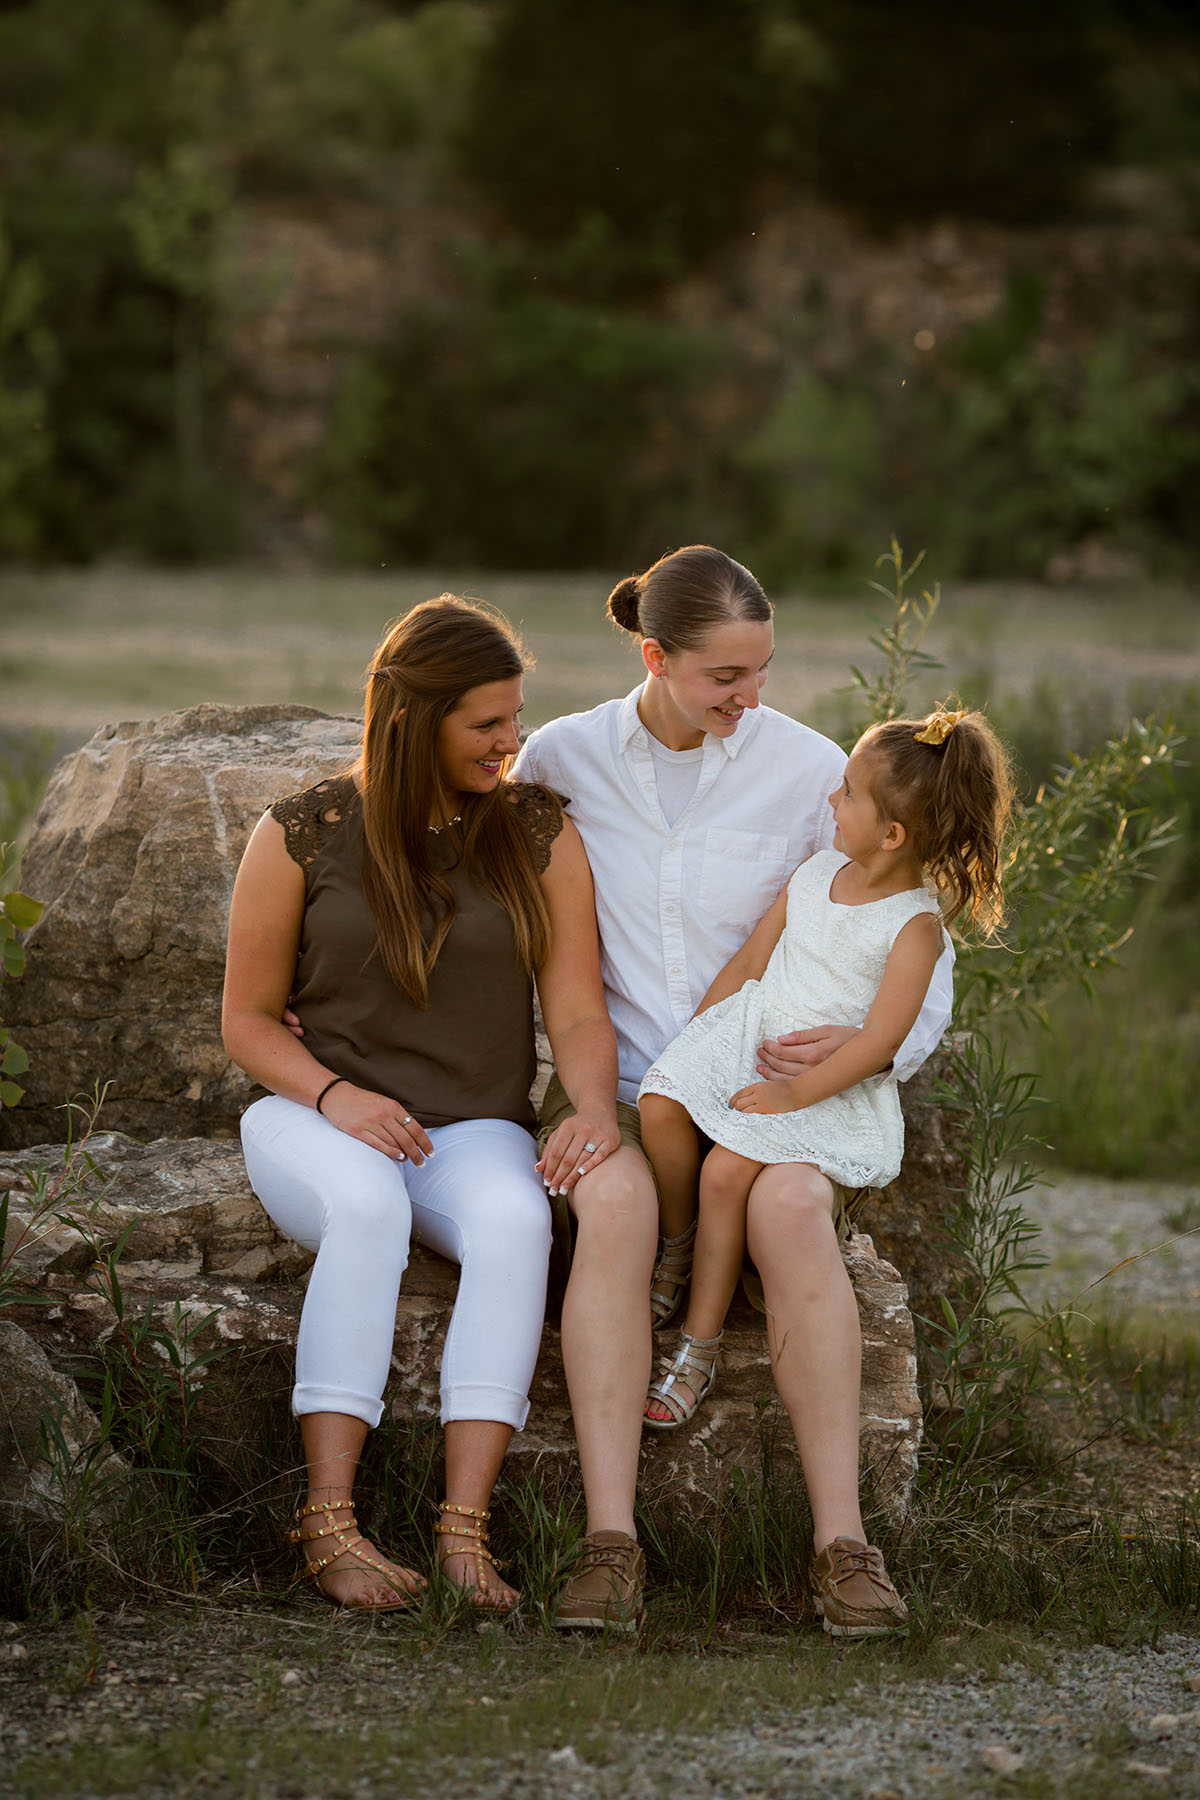 Sunset family portraits by the lake